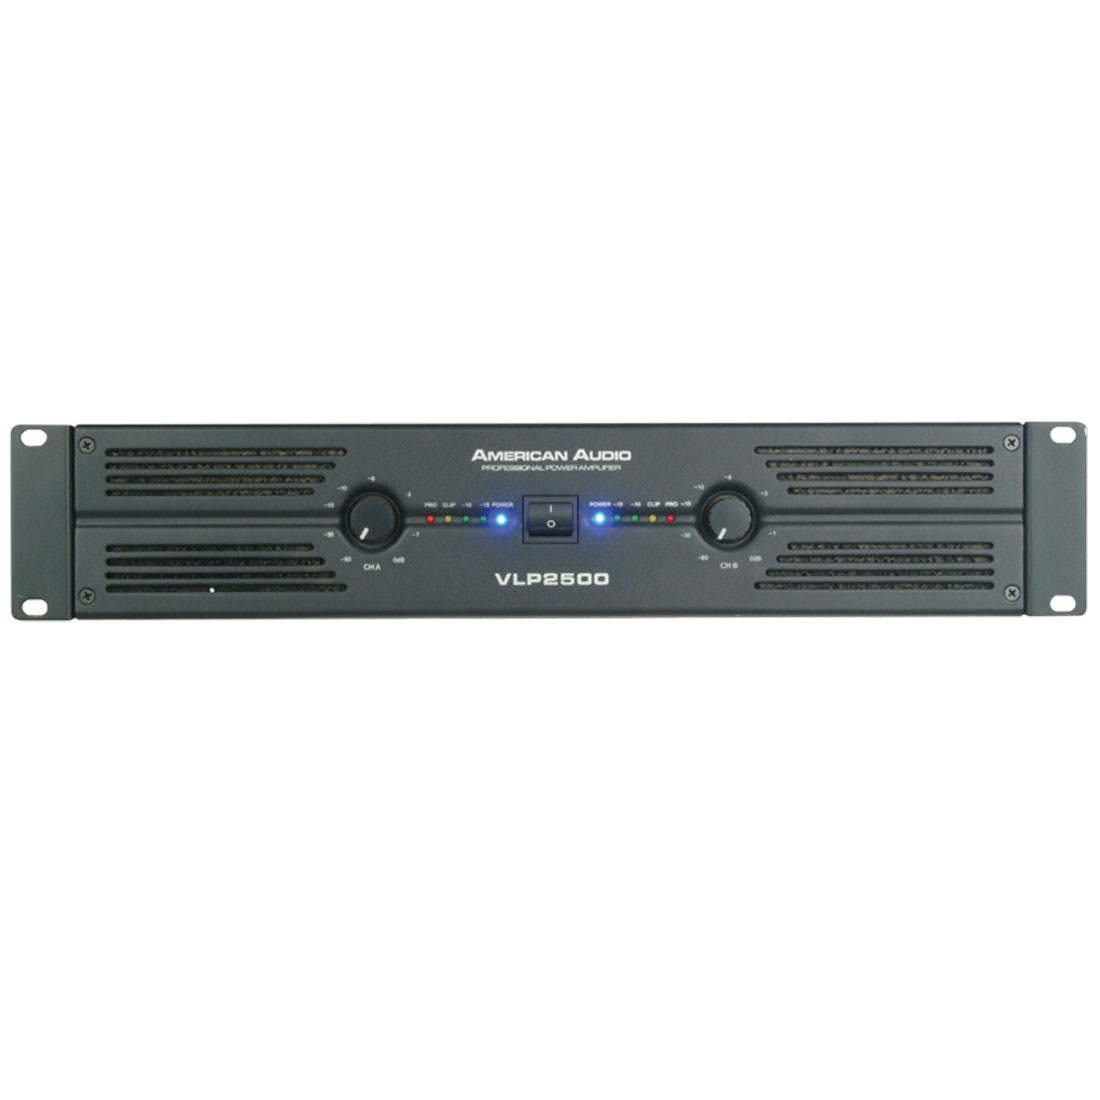 VLP2500 power amplifier